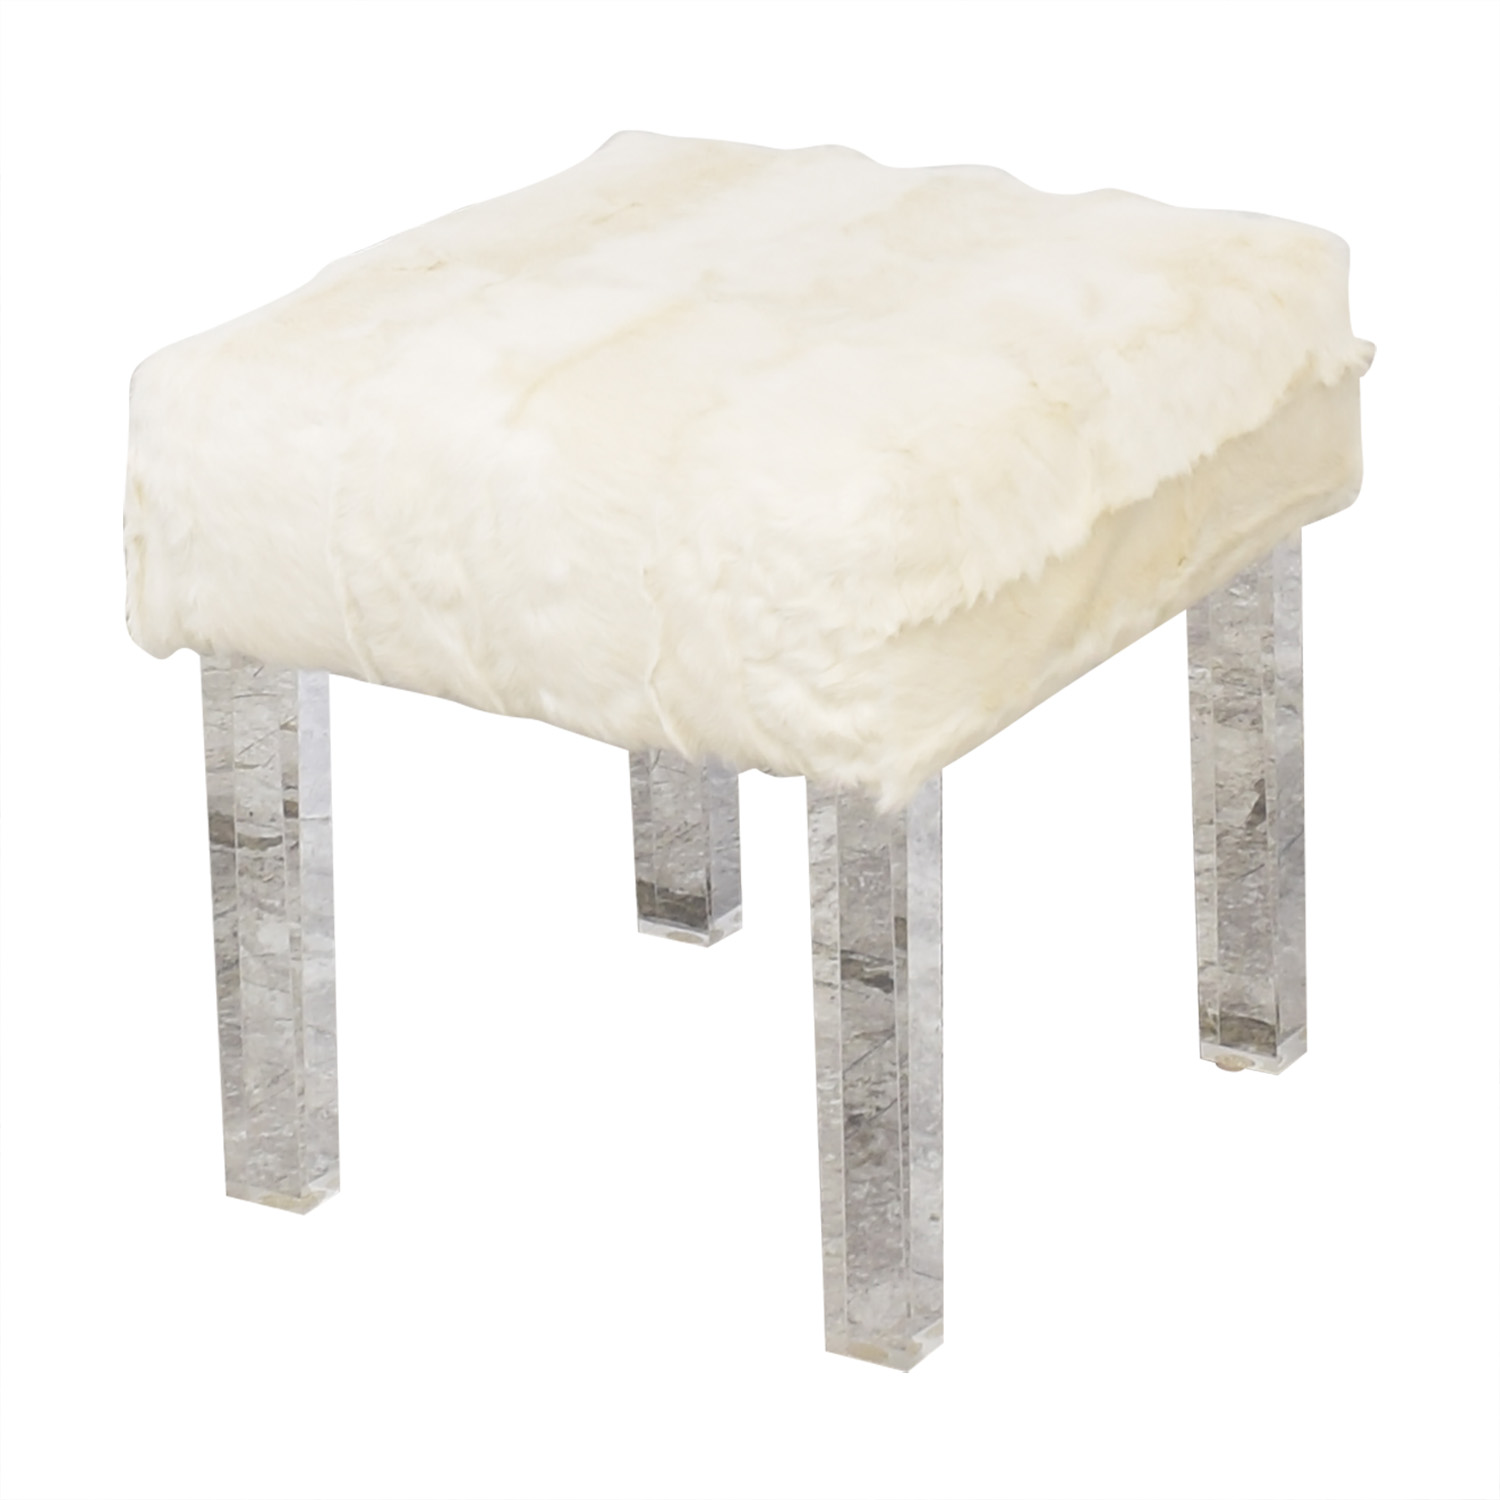 Outpost Original Outpost Original Lucite Bench with Kid Plate Benches